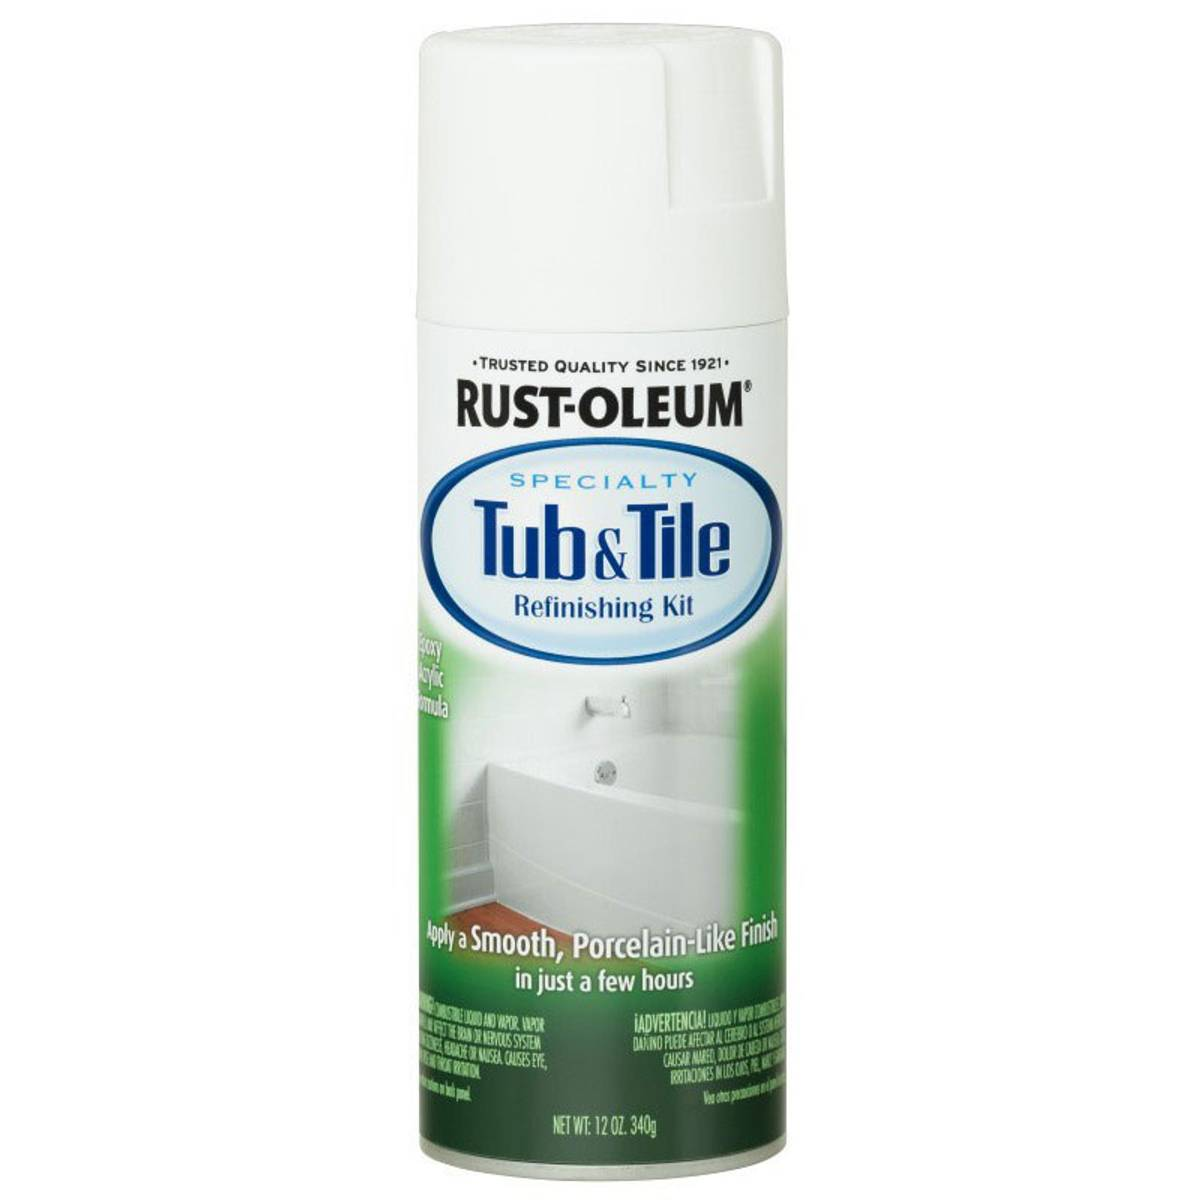 Rust-Oleum Specialty Tub & Tile Refinishing Kit